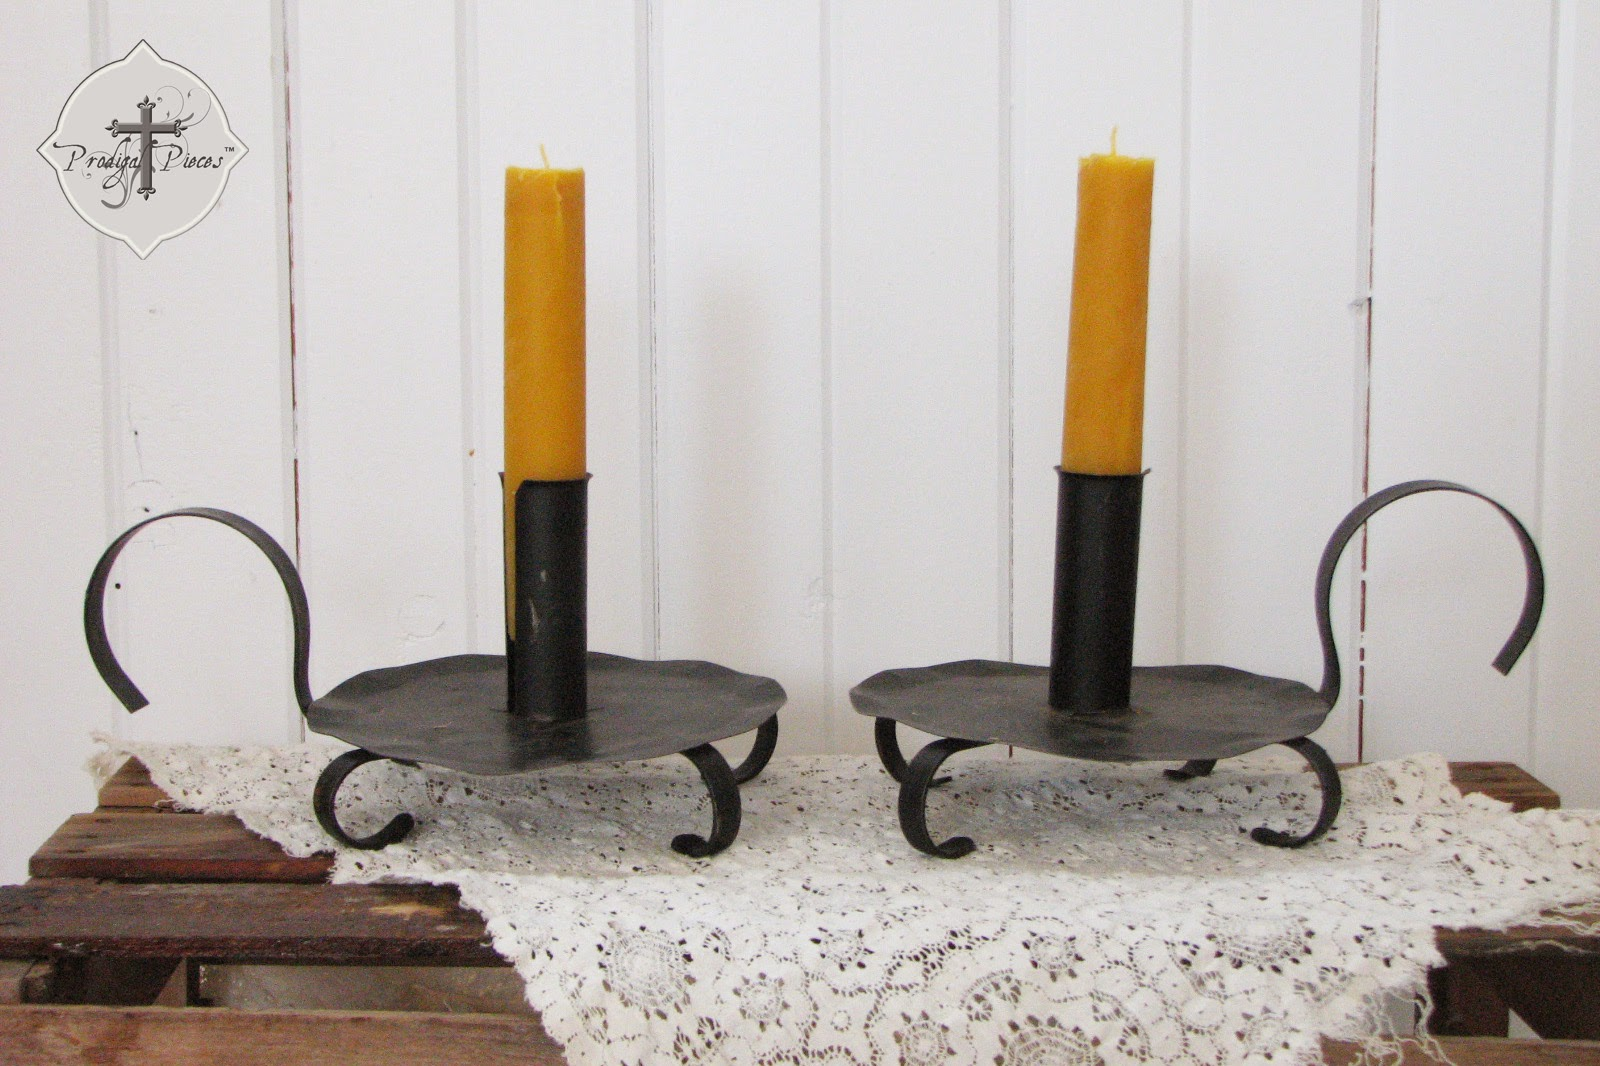 Set of Primitive Handmade Organic Beeswax Pillar Candles via Prodigal Pieces